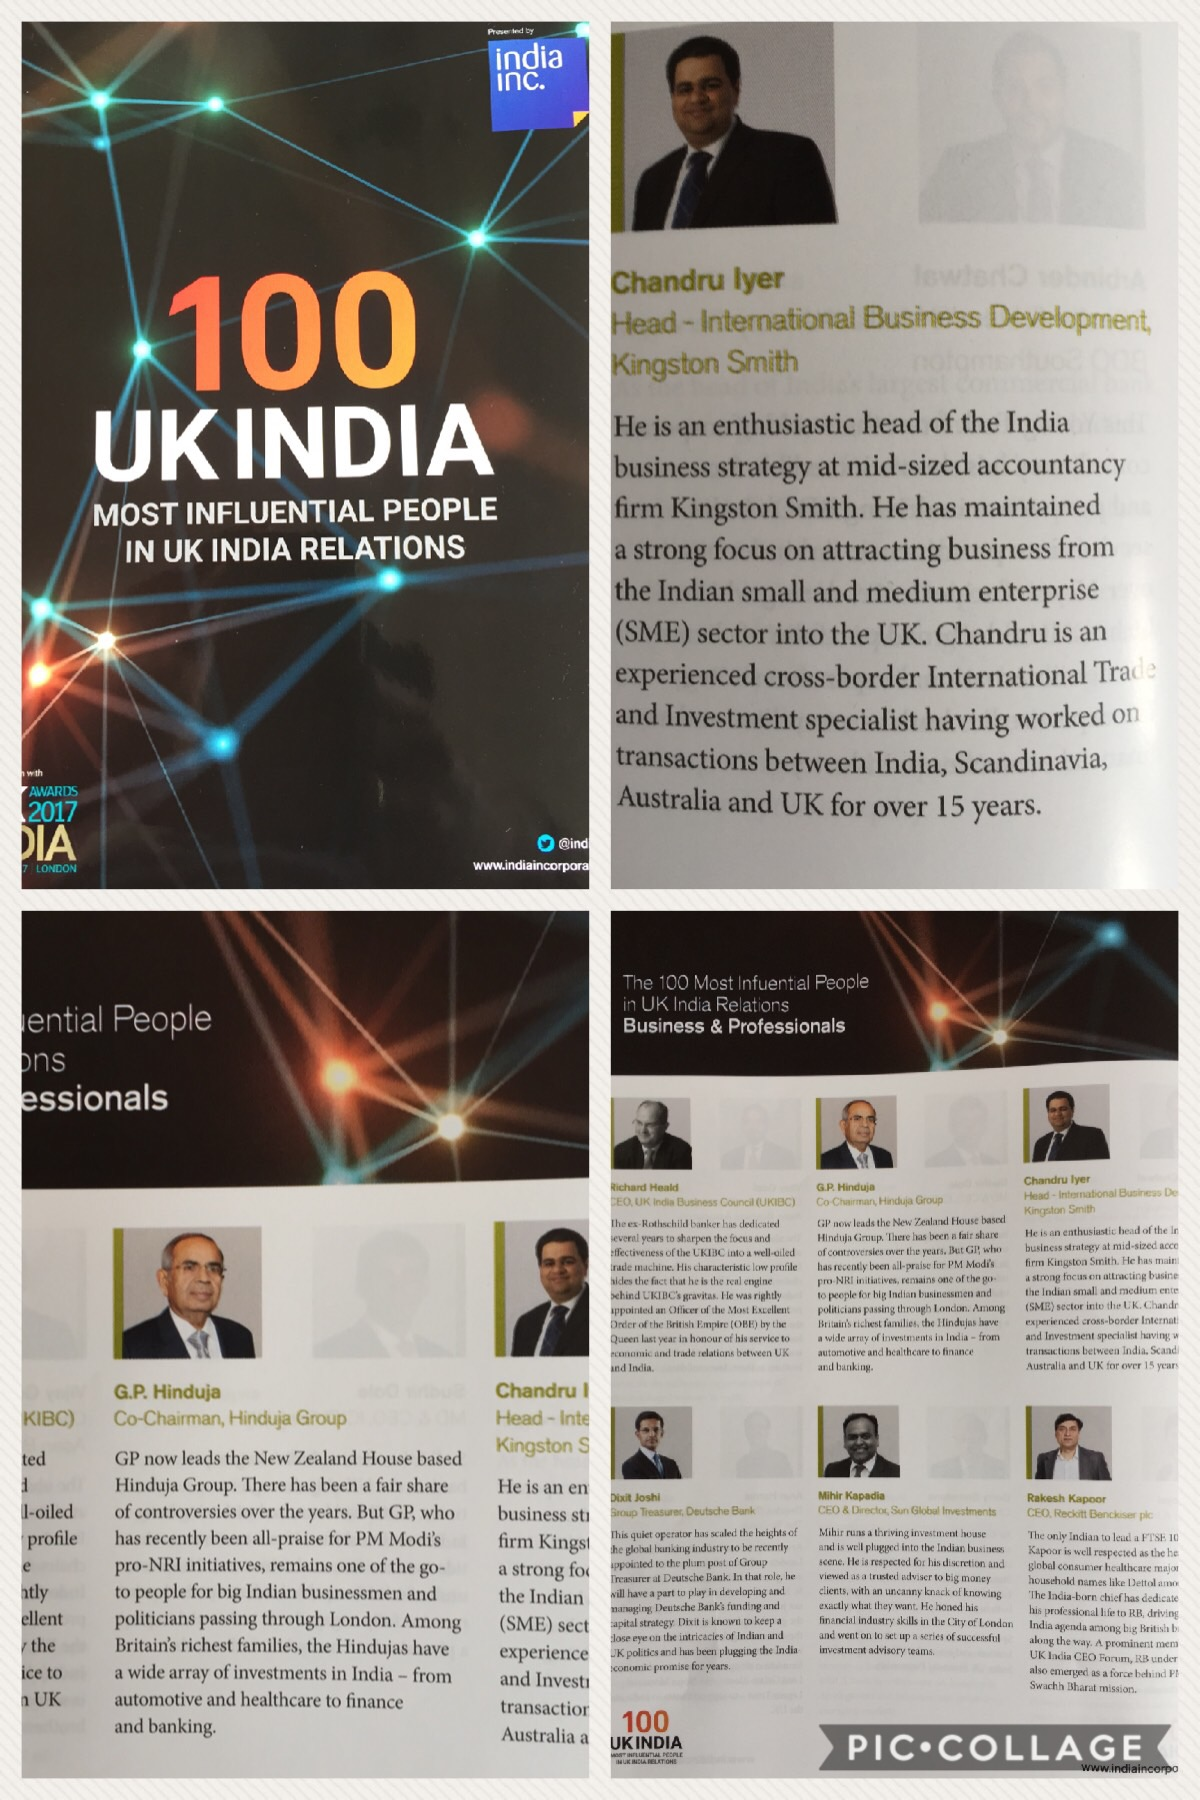 Chandru Iyer listed in the 100 Most Influential People in UK